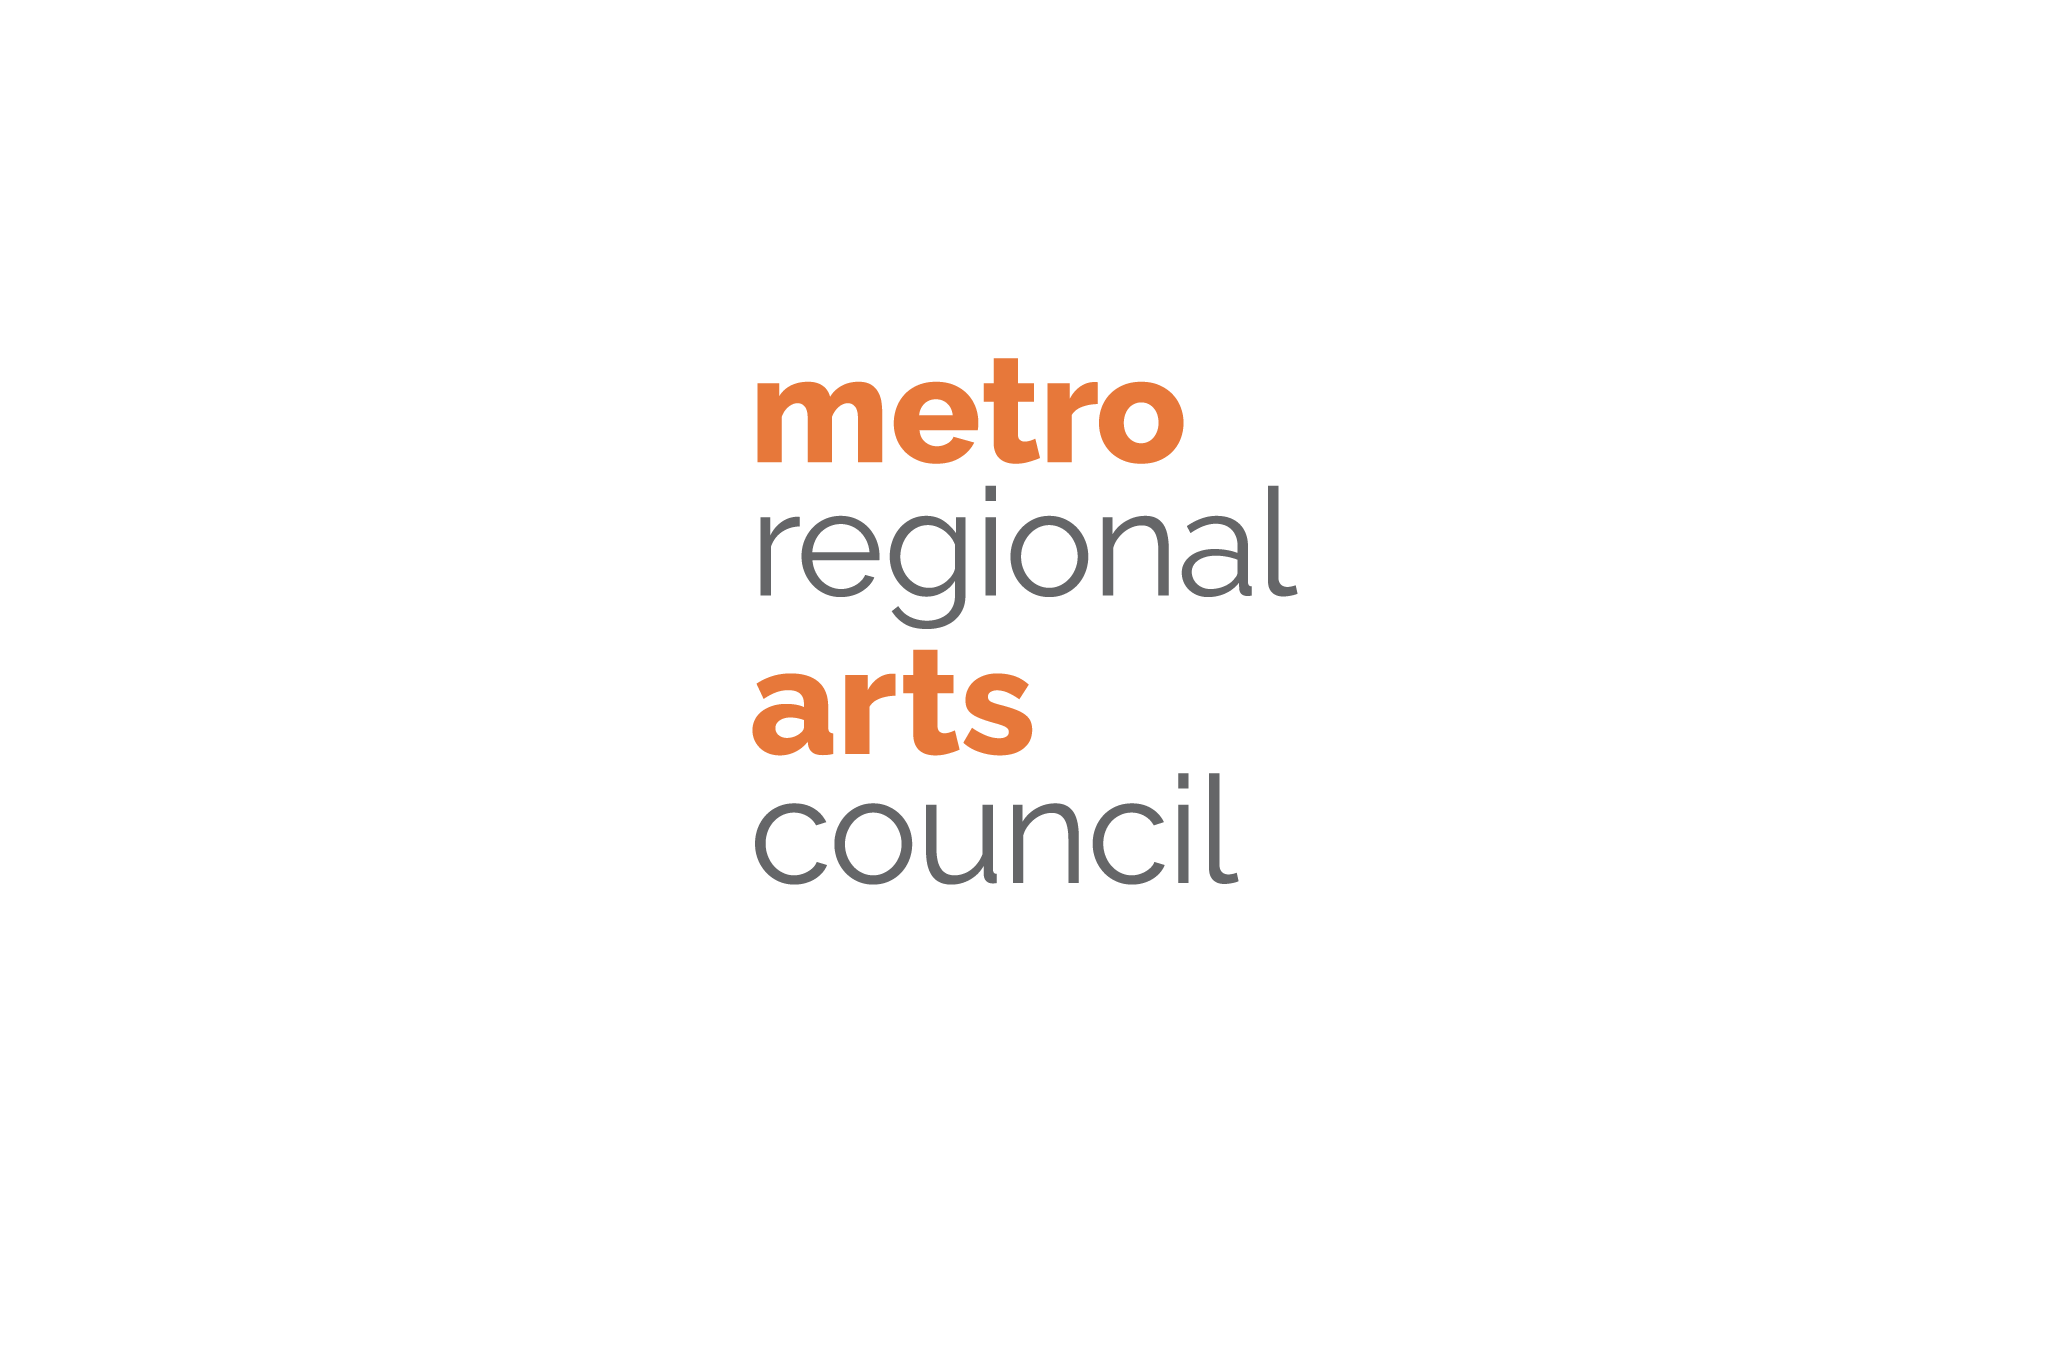 Metropolitan Regional Arts Council new 2-color logo